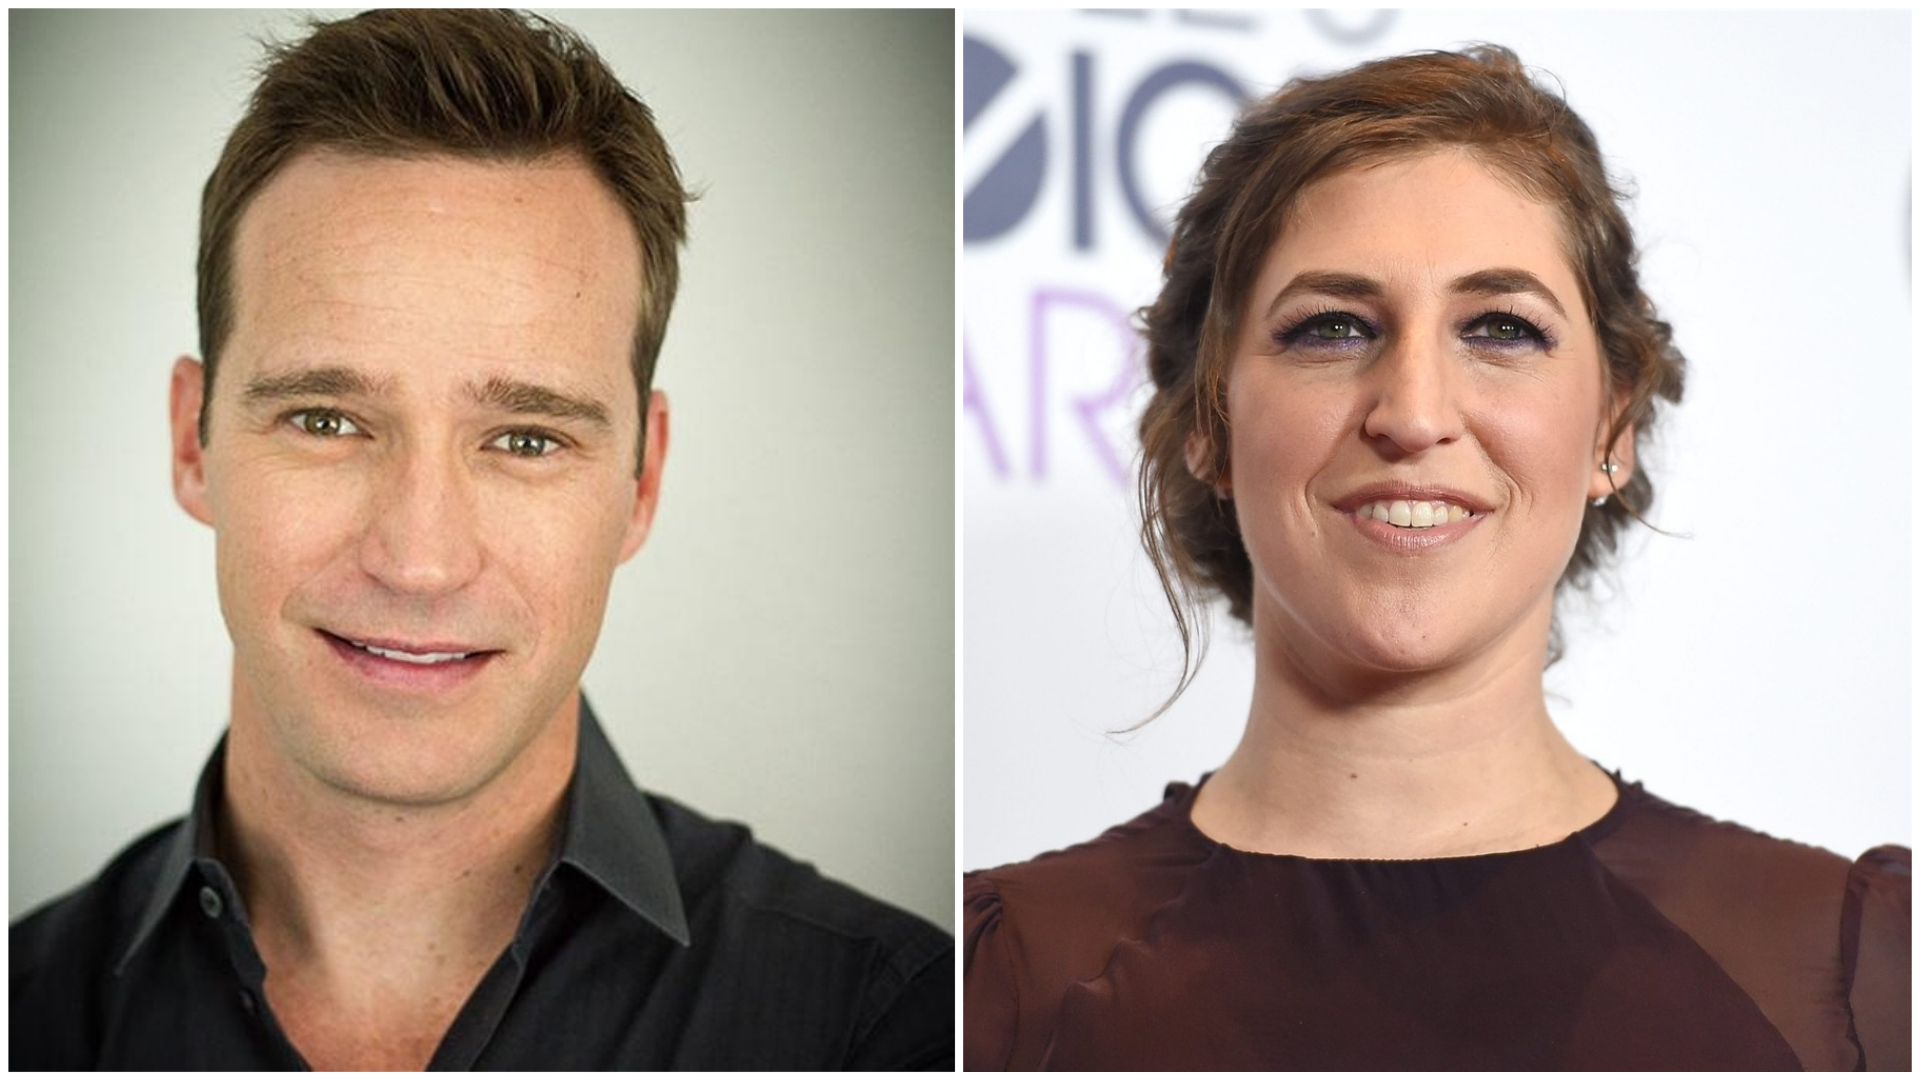 Jeopardy!' producer Mike Richards named host, Mayim Bialik given spinoff series